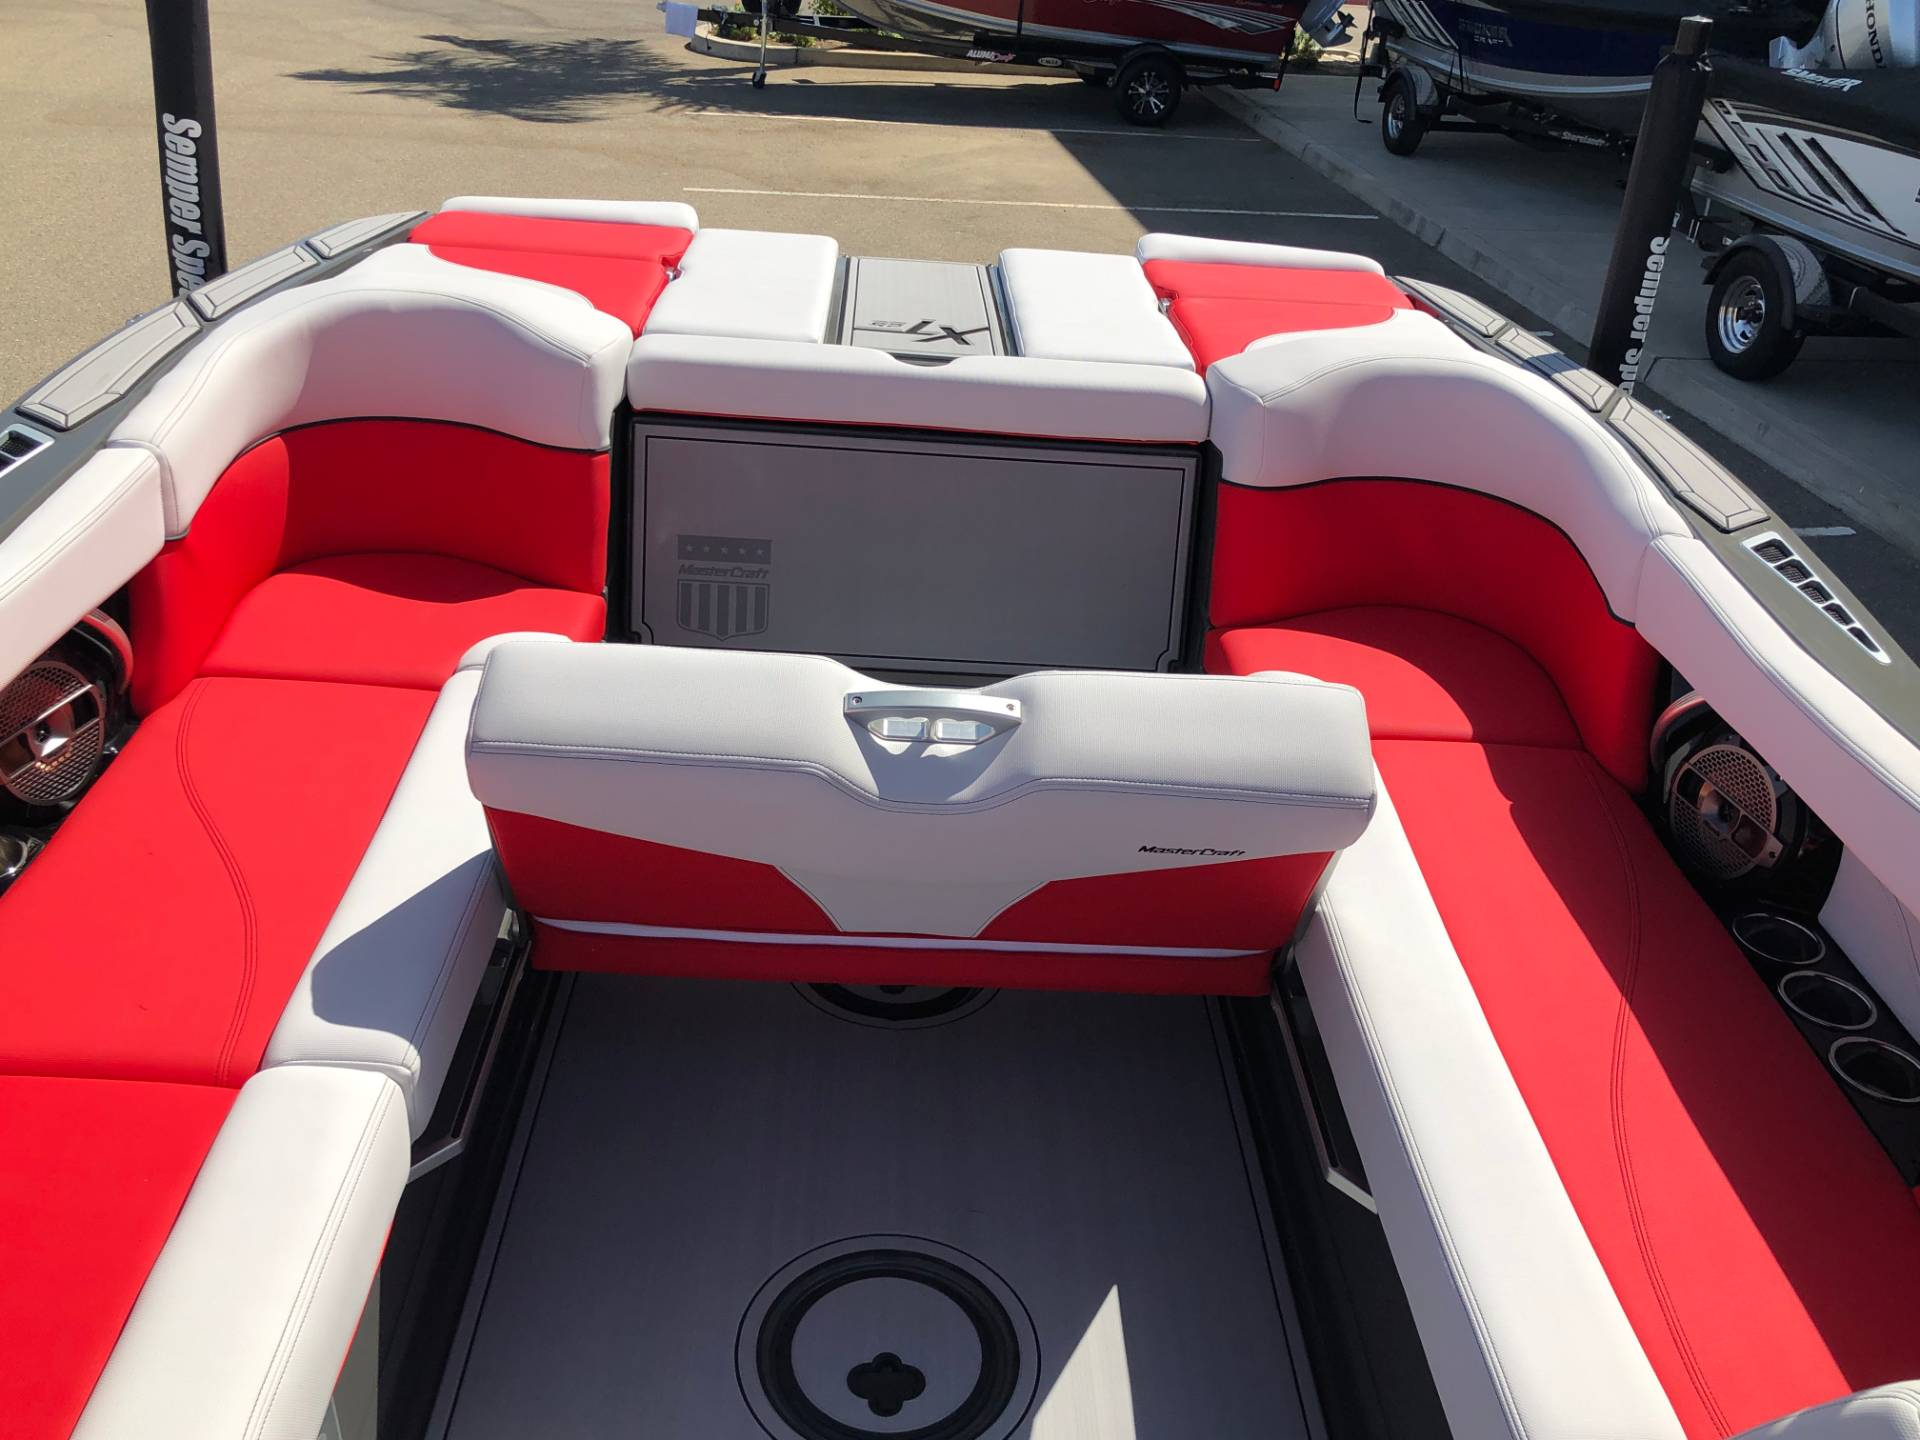 2020 Mastercraft XT25 in Madera, California - Photo 12